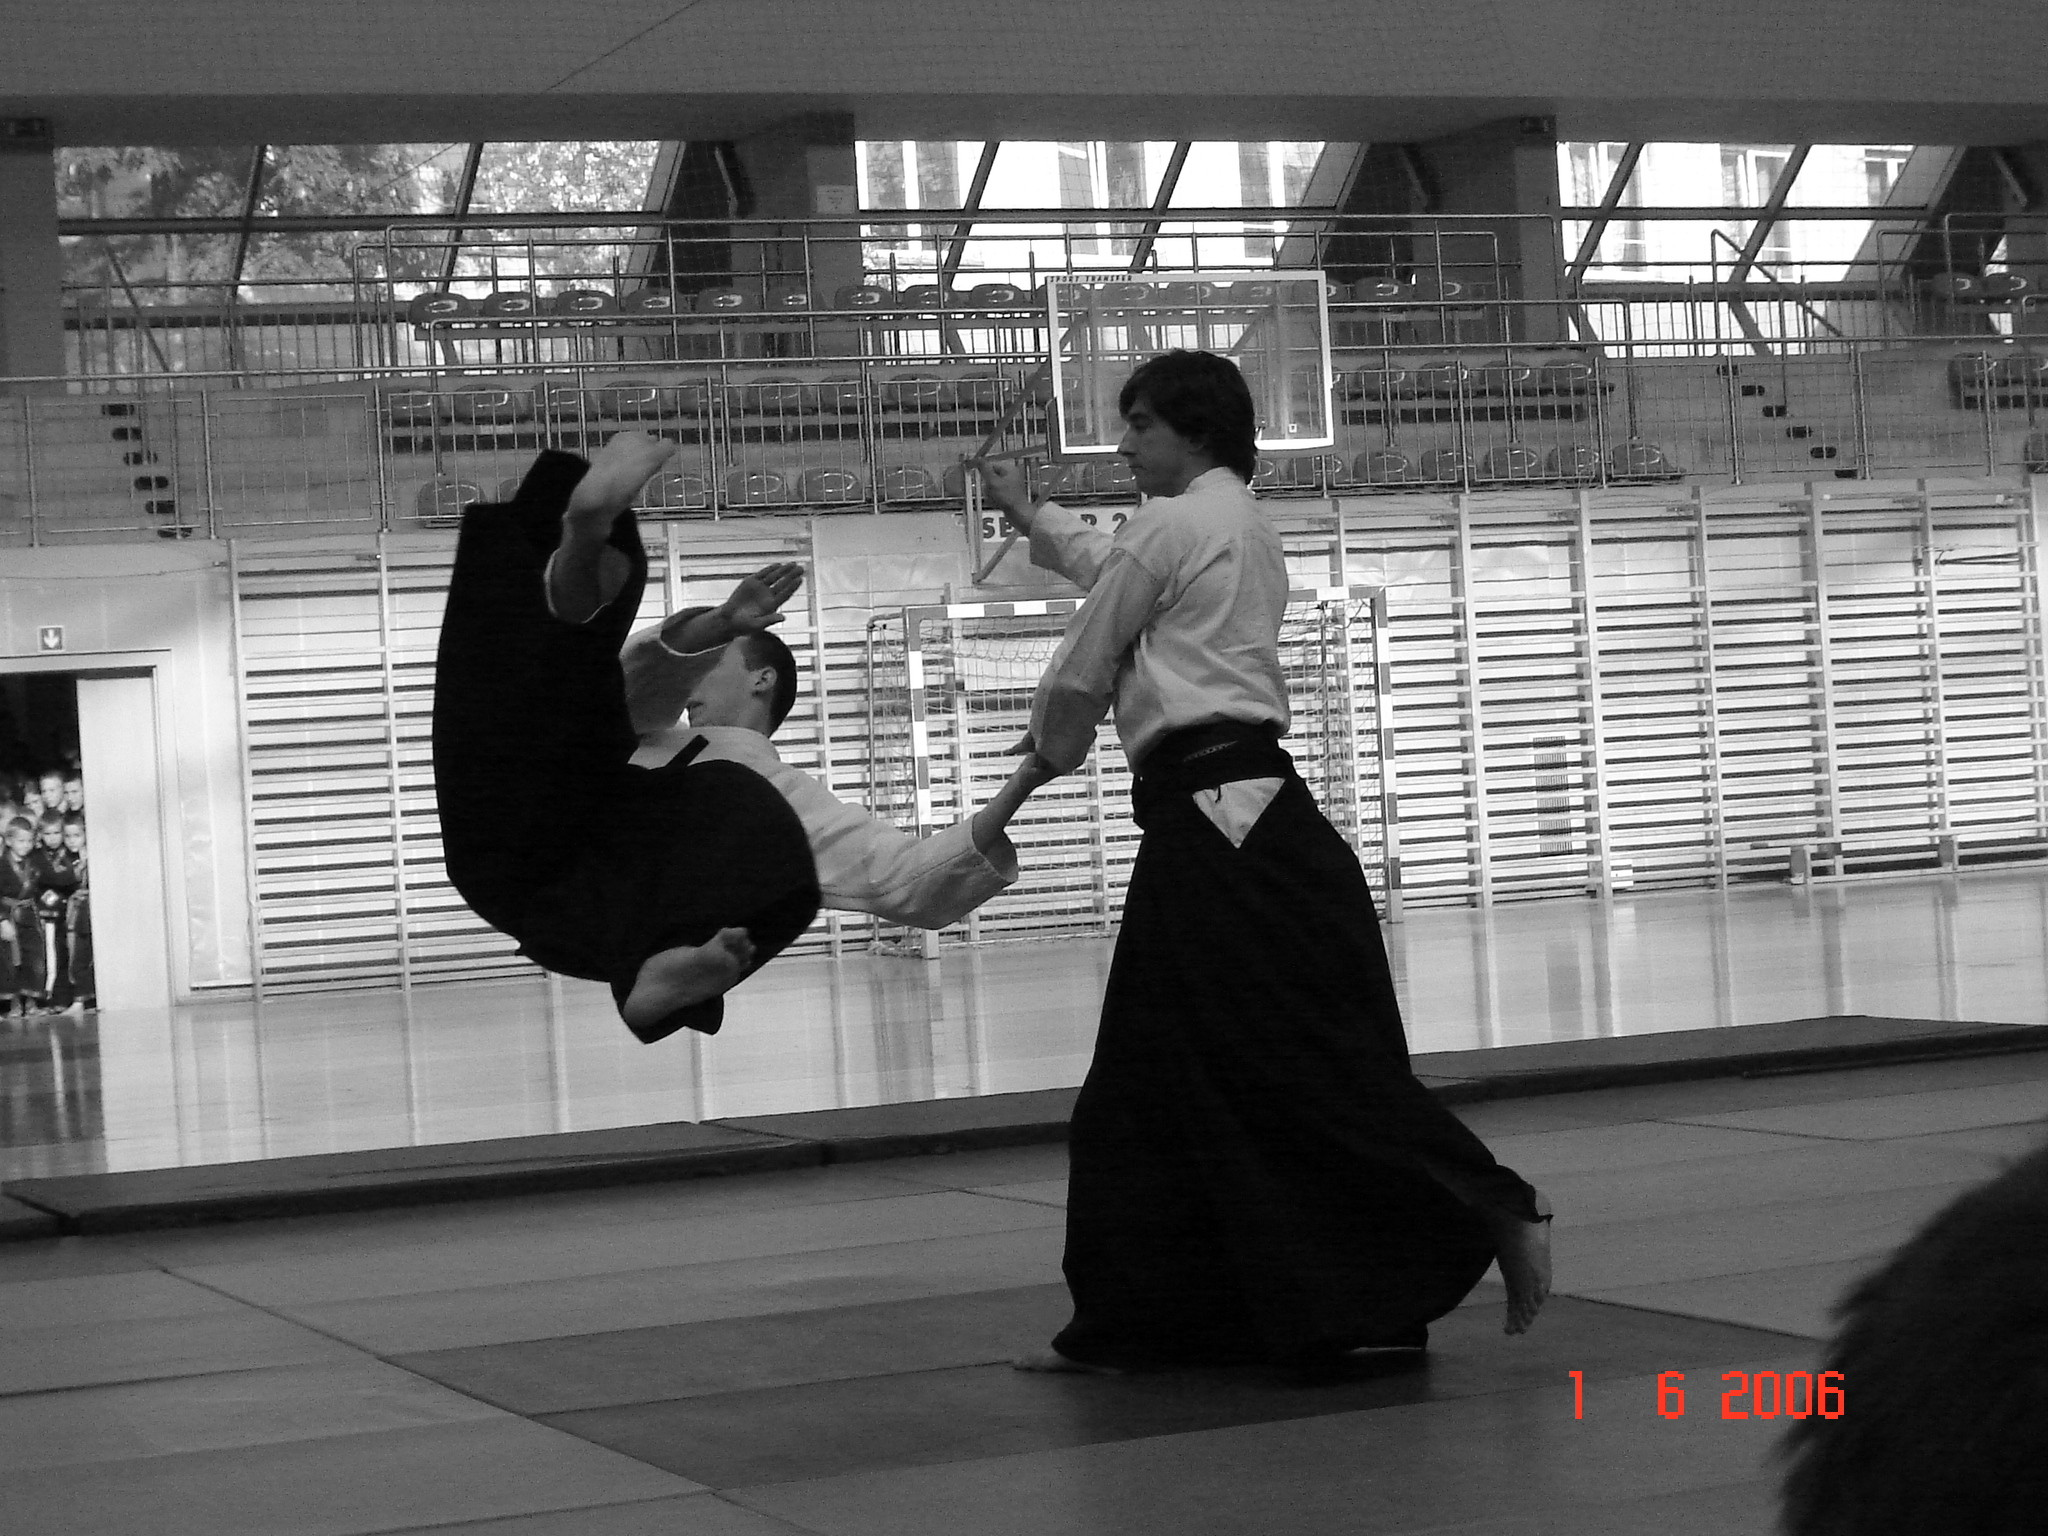 2048x1536 ... Martial arts - Aikido by ForAlion